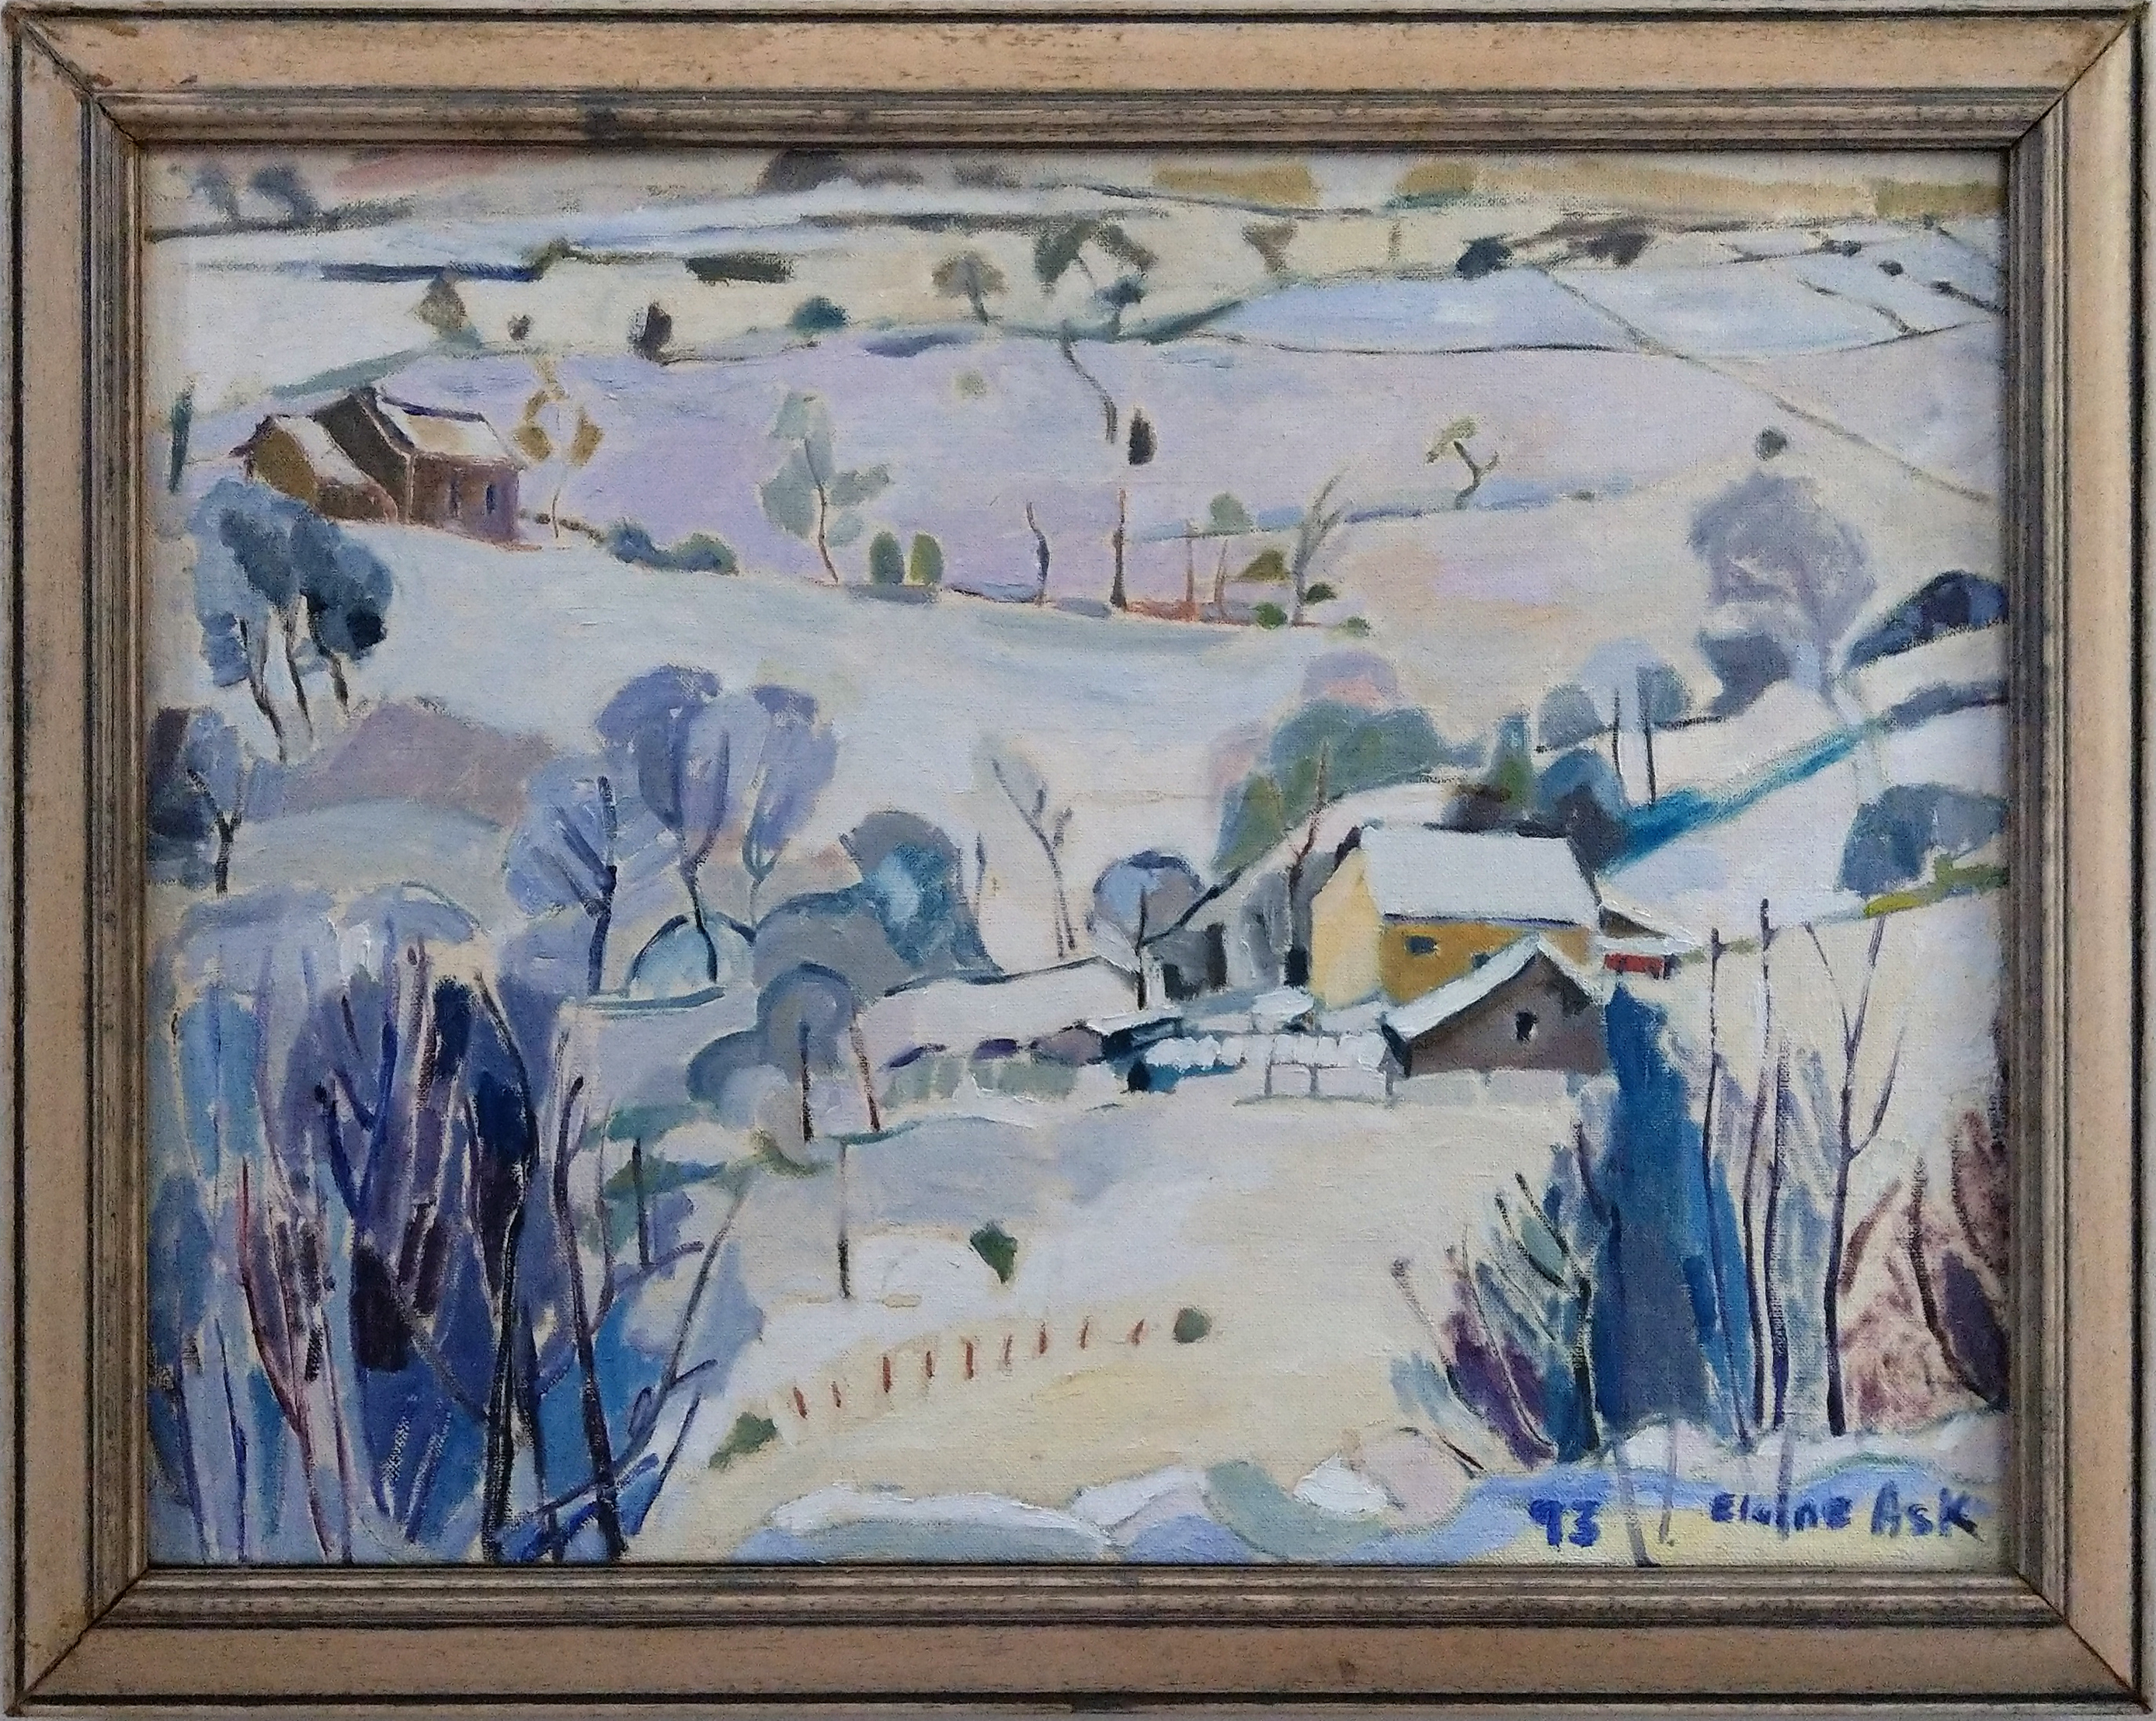 Framed Oil Painting of landscape in Hartshead in winter snow, by Elaine Ask. 1991